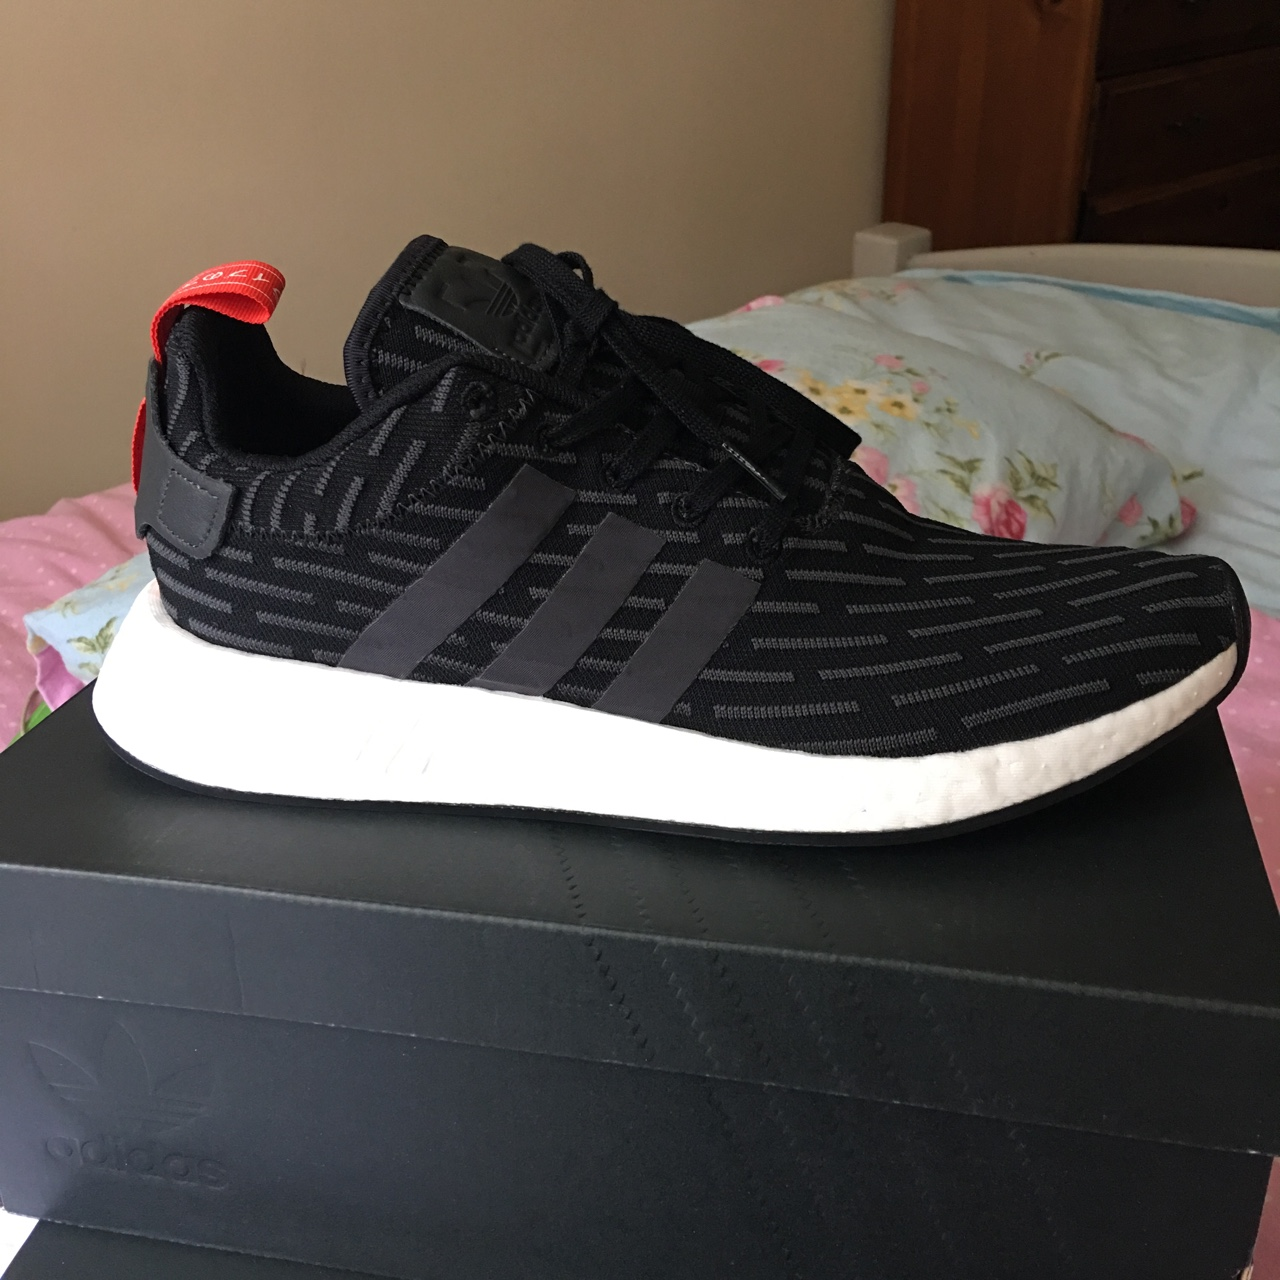 buy online a7bea 57ea2 Adidas NMD R2 brand new in box. Unworn and... - Depop